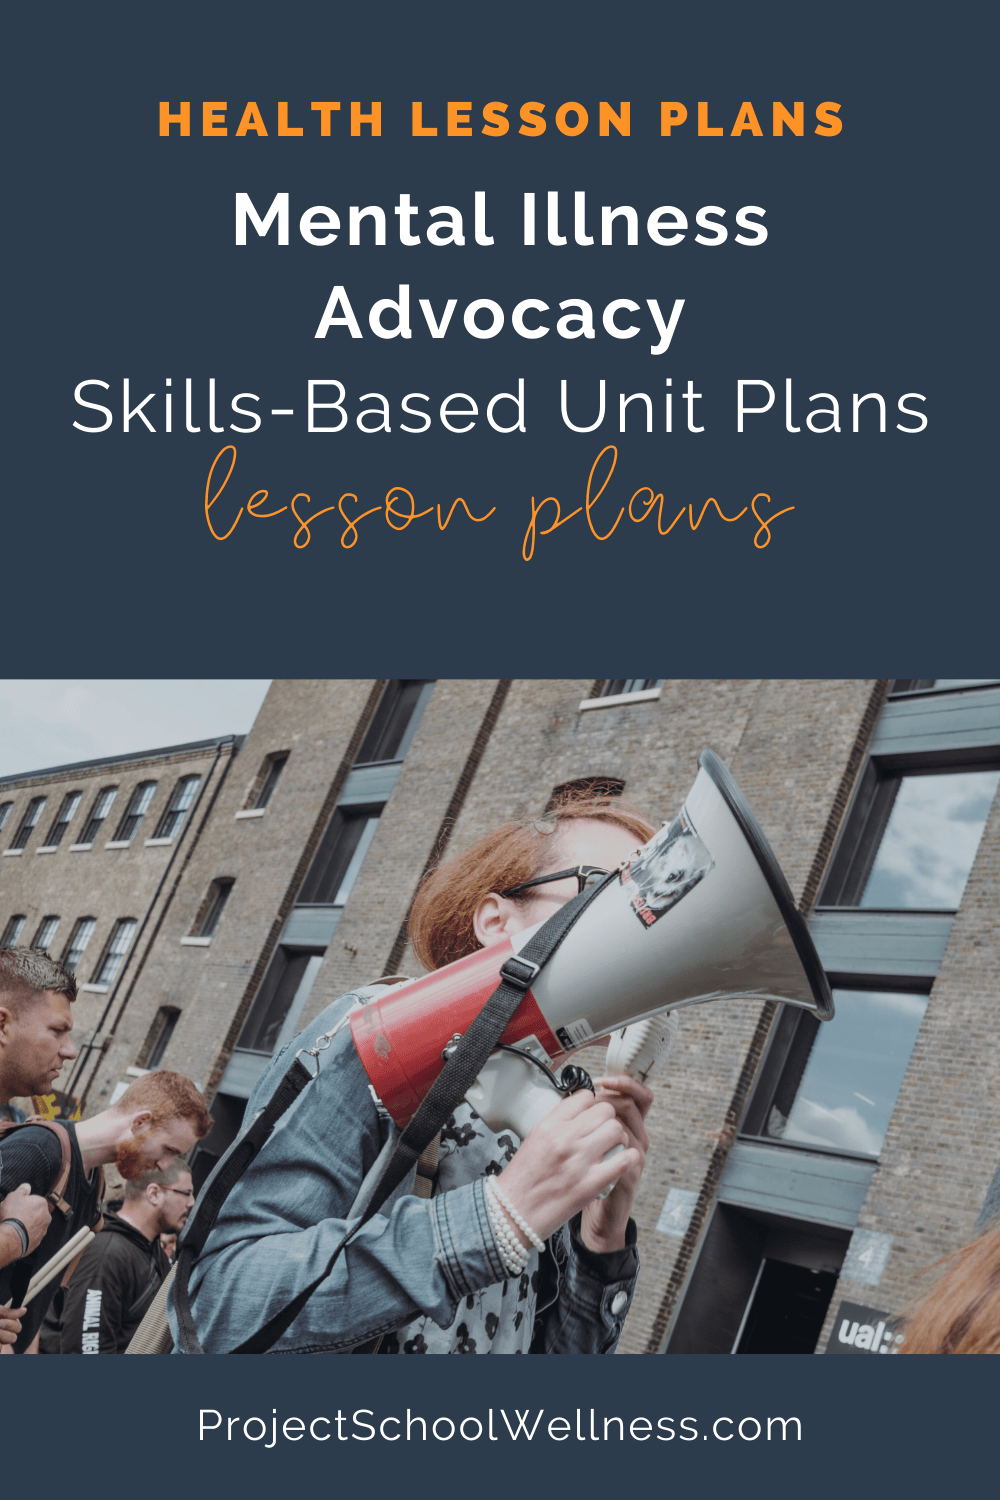 Skills-Based Health Lesson Plans - Mental Illness Advocacy - Designed by Project School Wellness